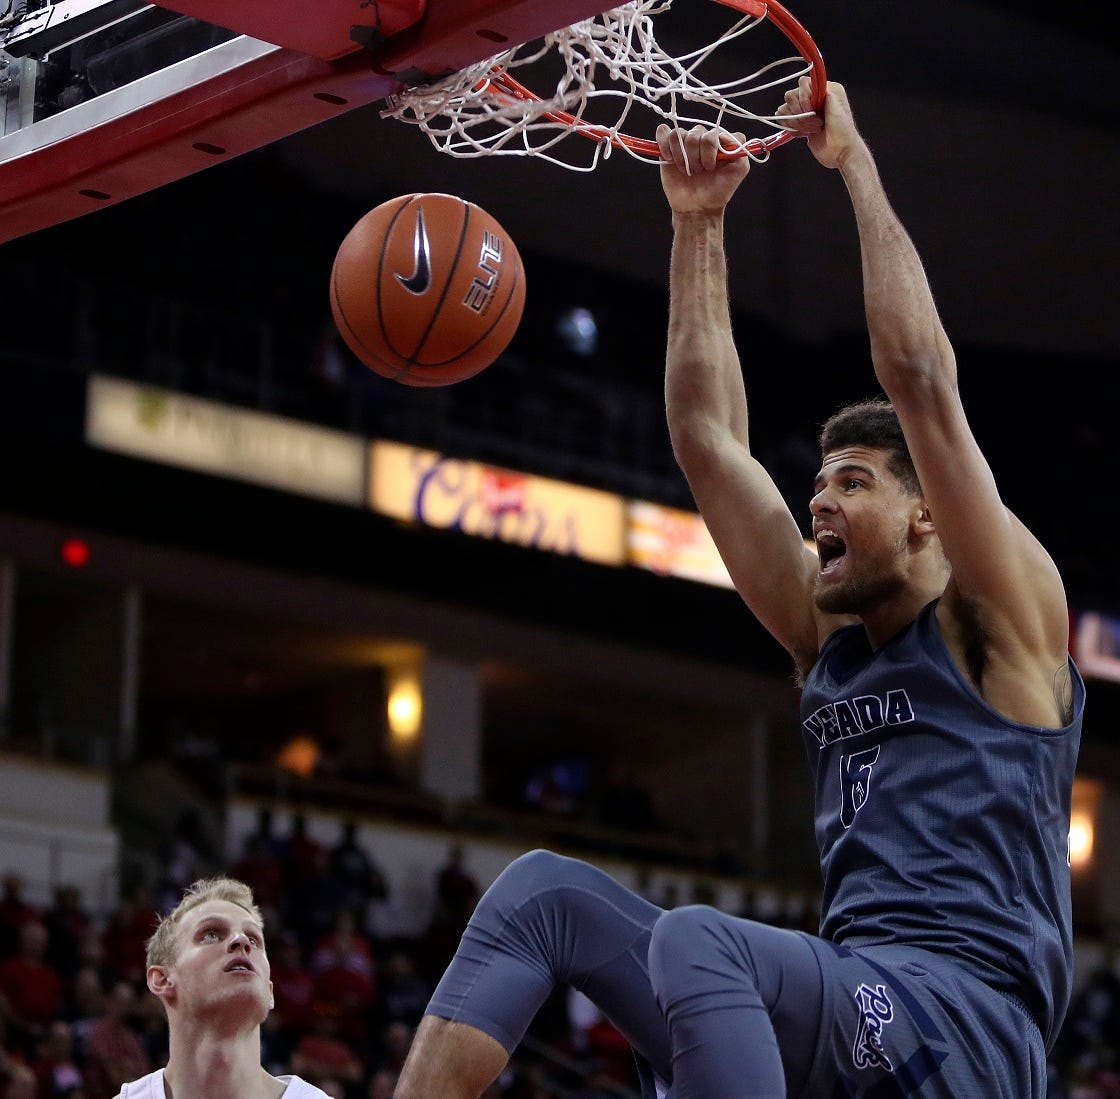 Nevada basketball passes tough road test at Fresno State, 74-64